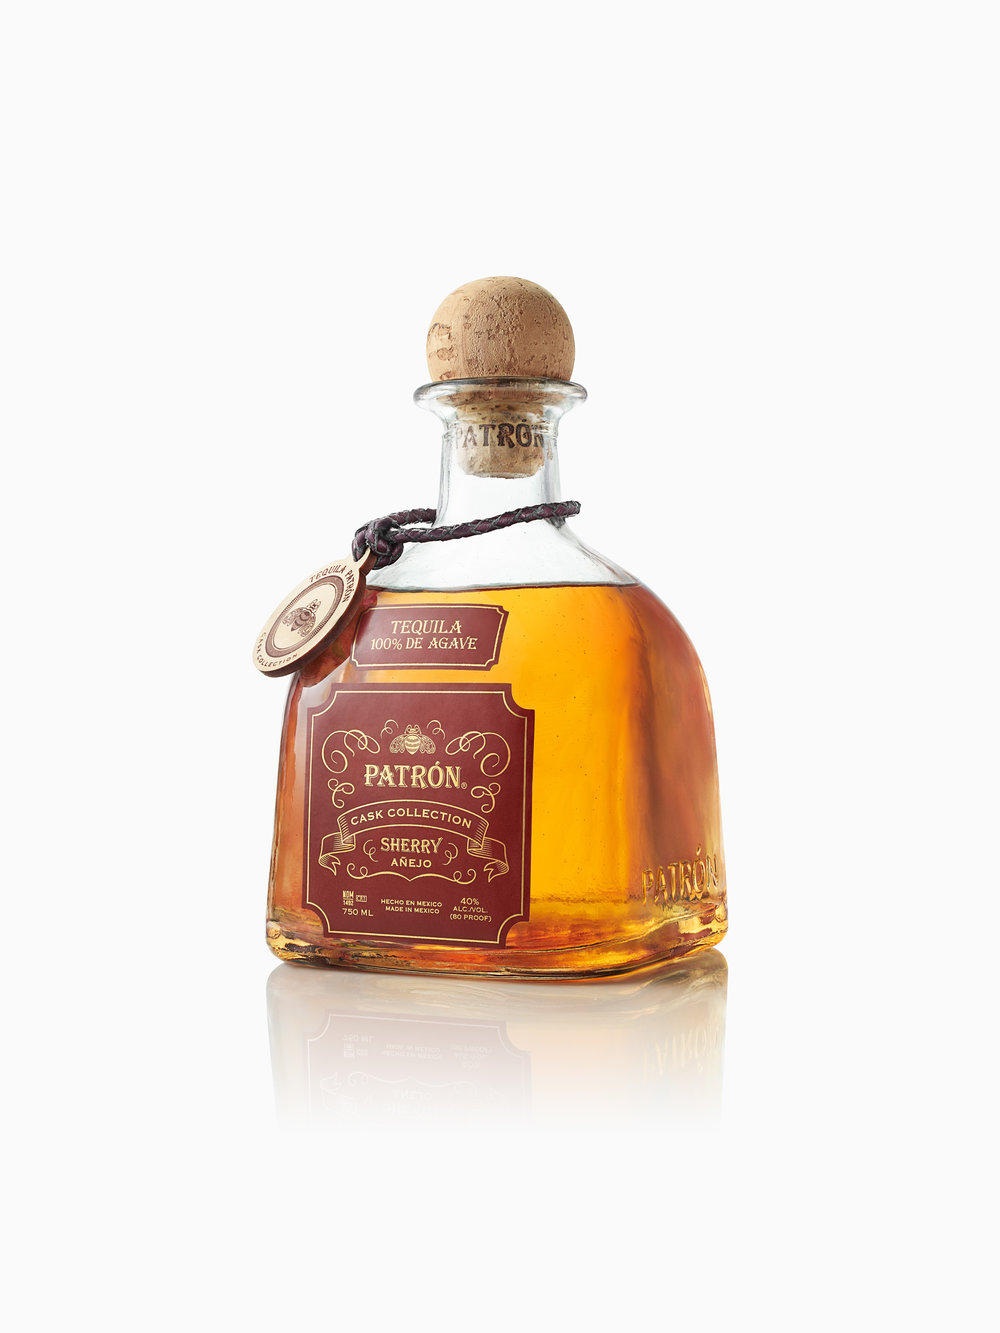 U_PATRON_Sherry_Bottle_750ml_BottleAtAngle_171_RGB copy.jpg